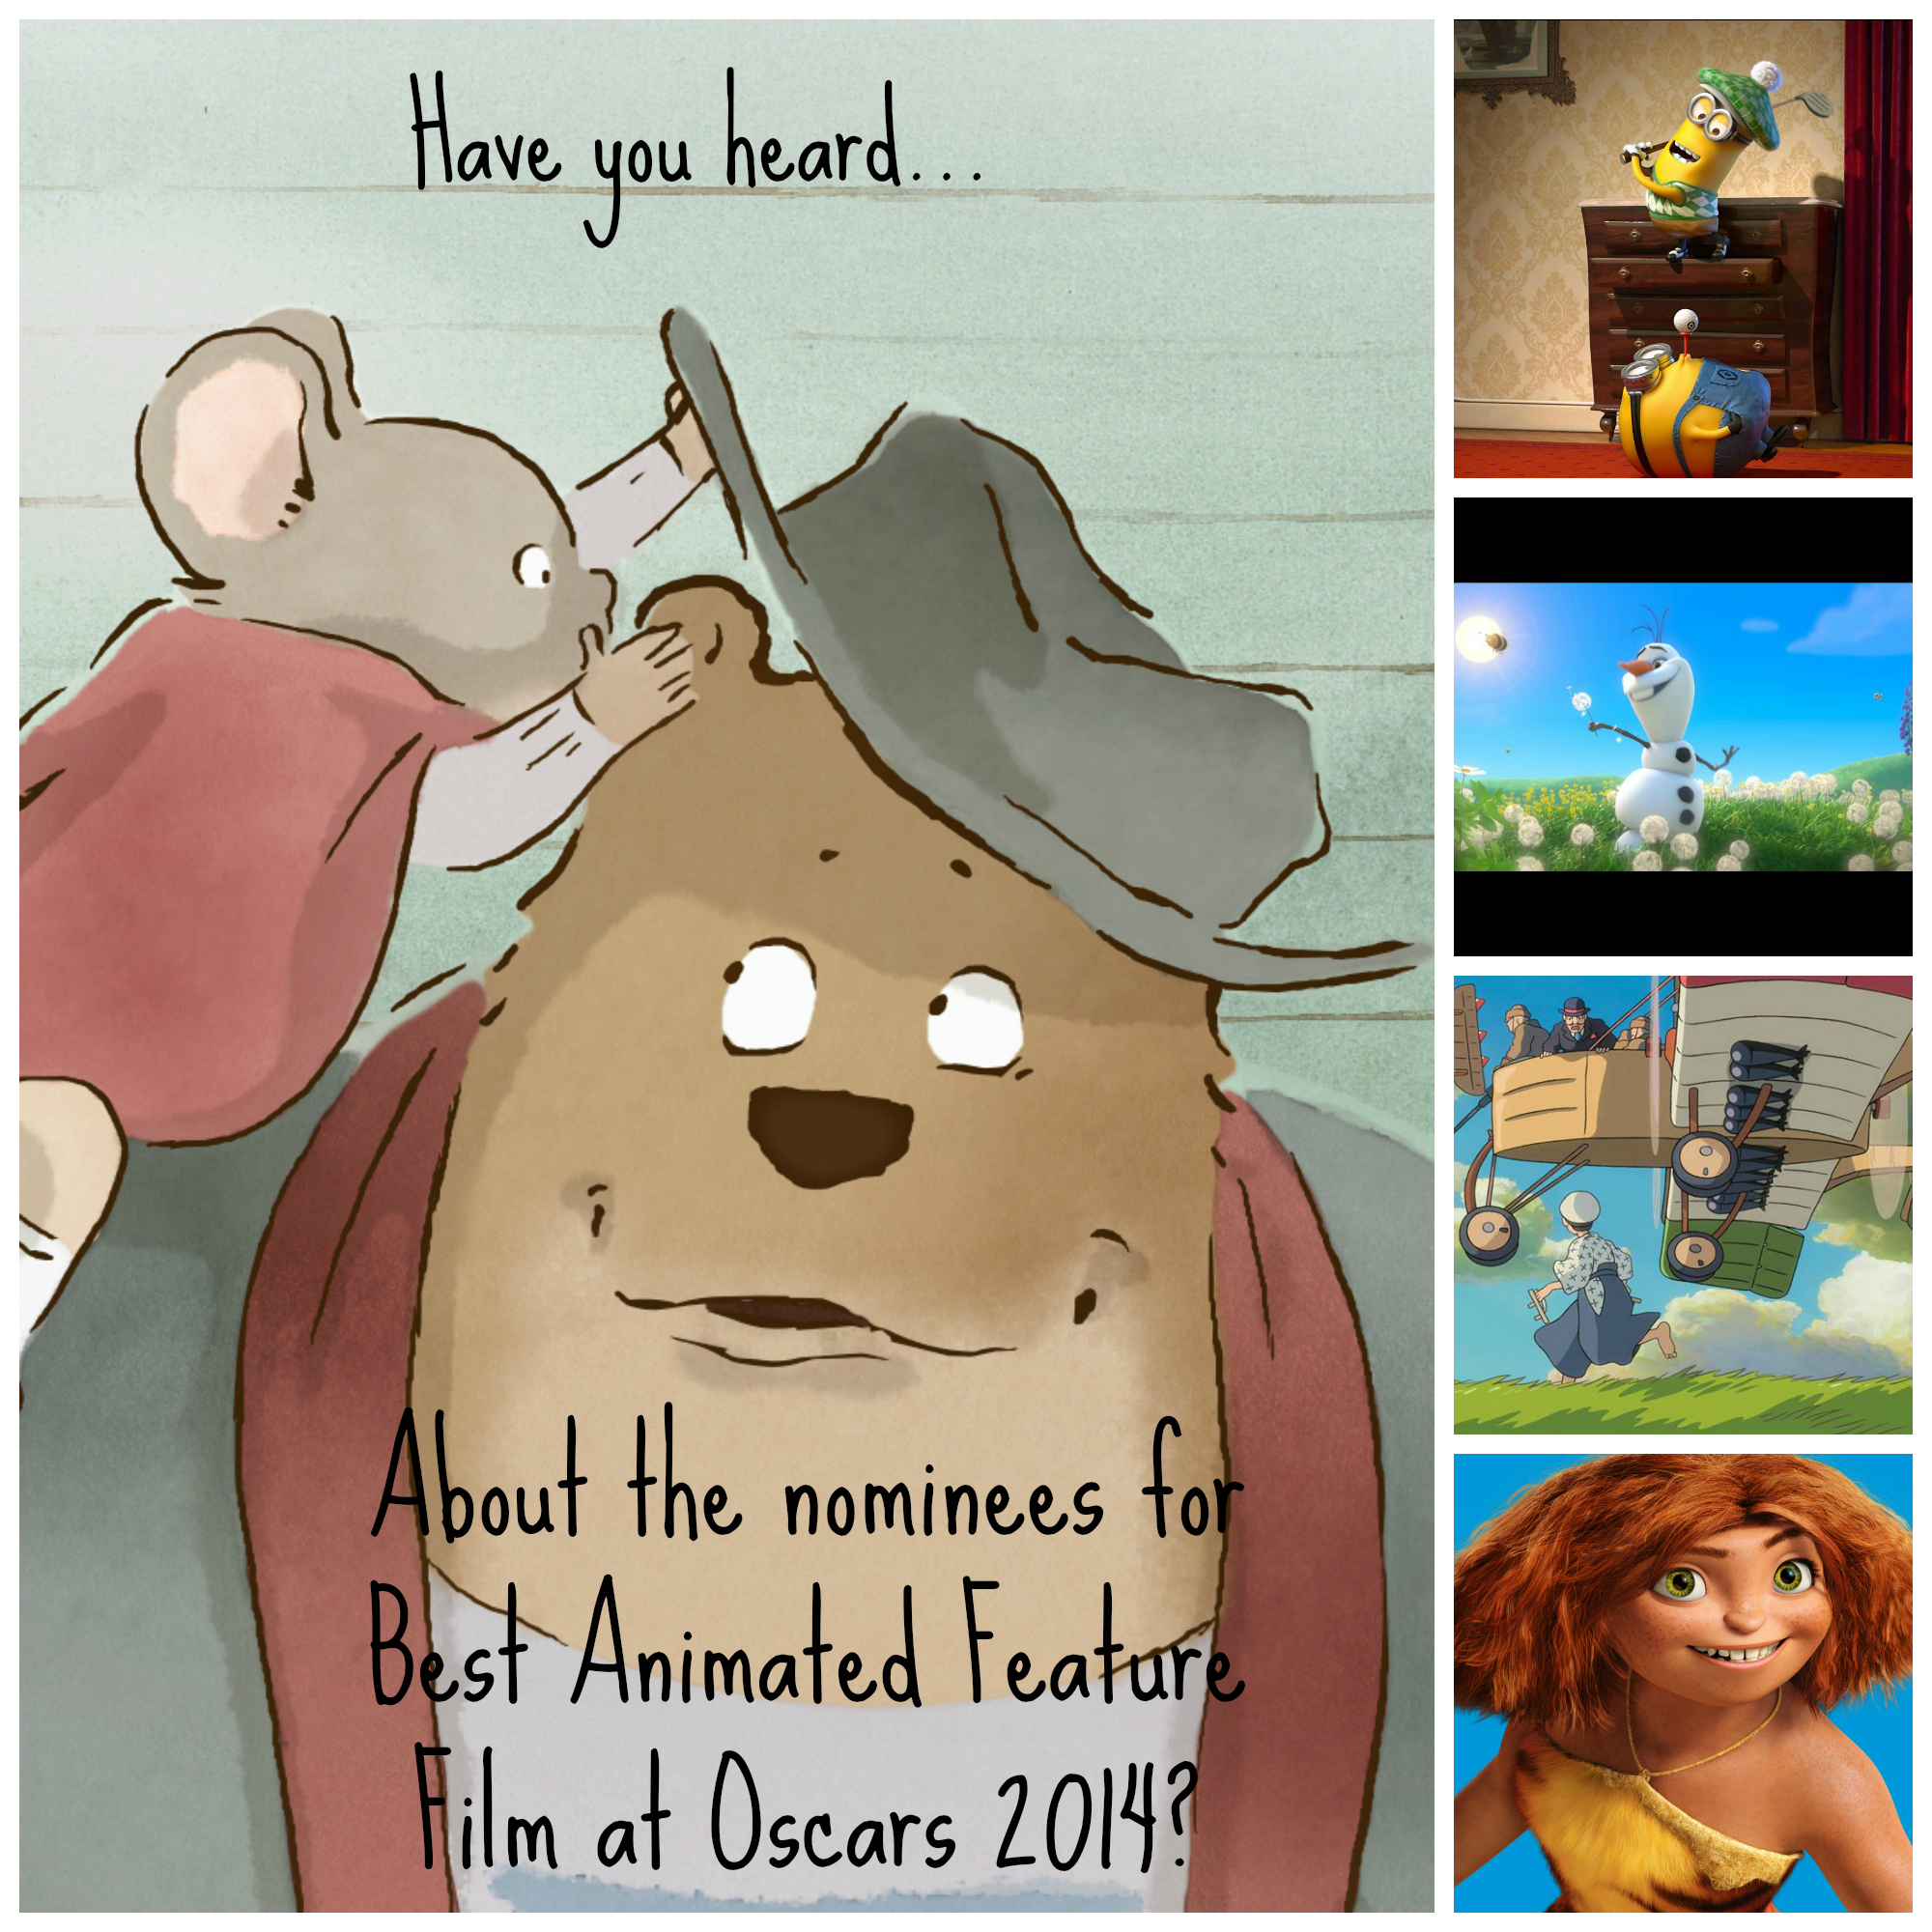 Best Animated Feature Films Oscars 2014 collage